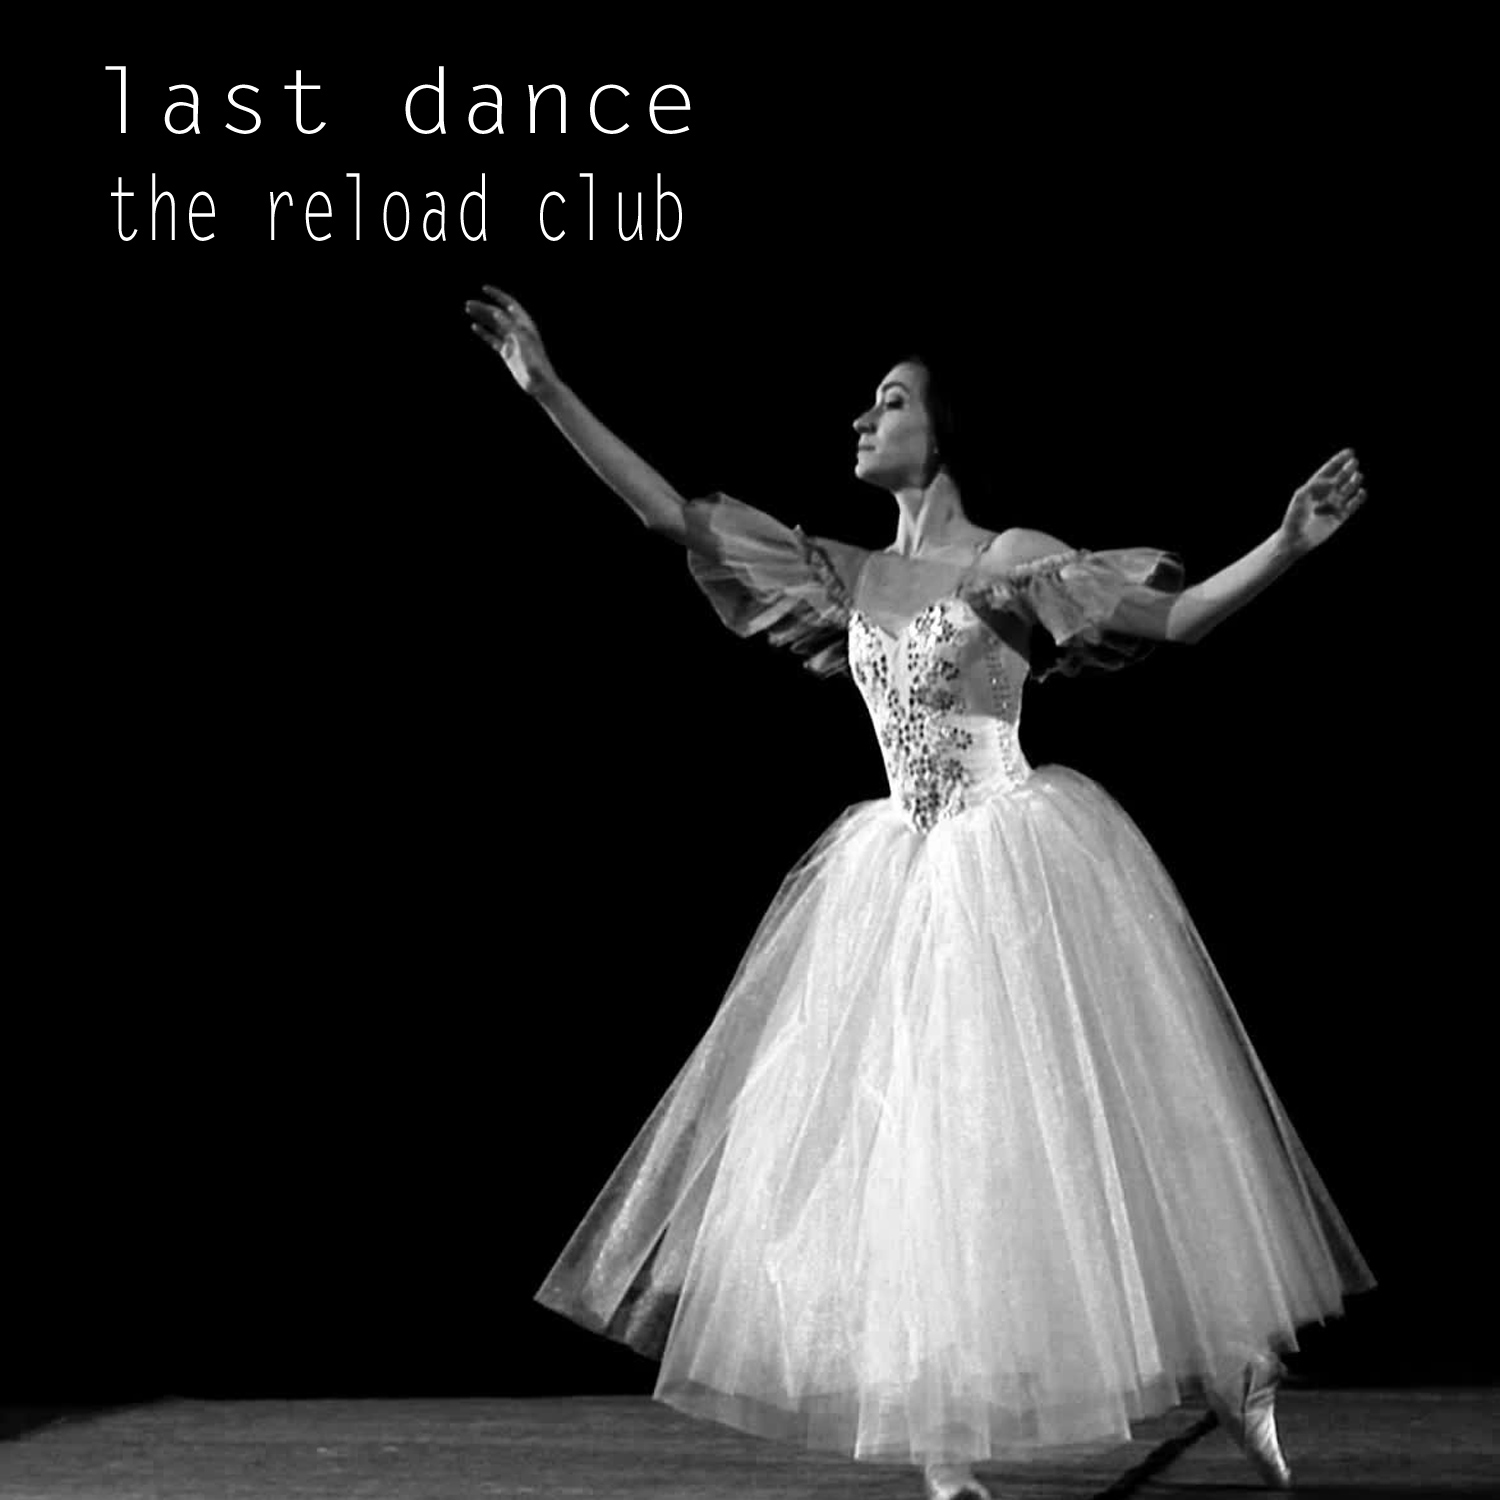 the reload club ep lastd ance cover